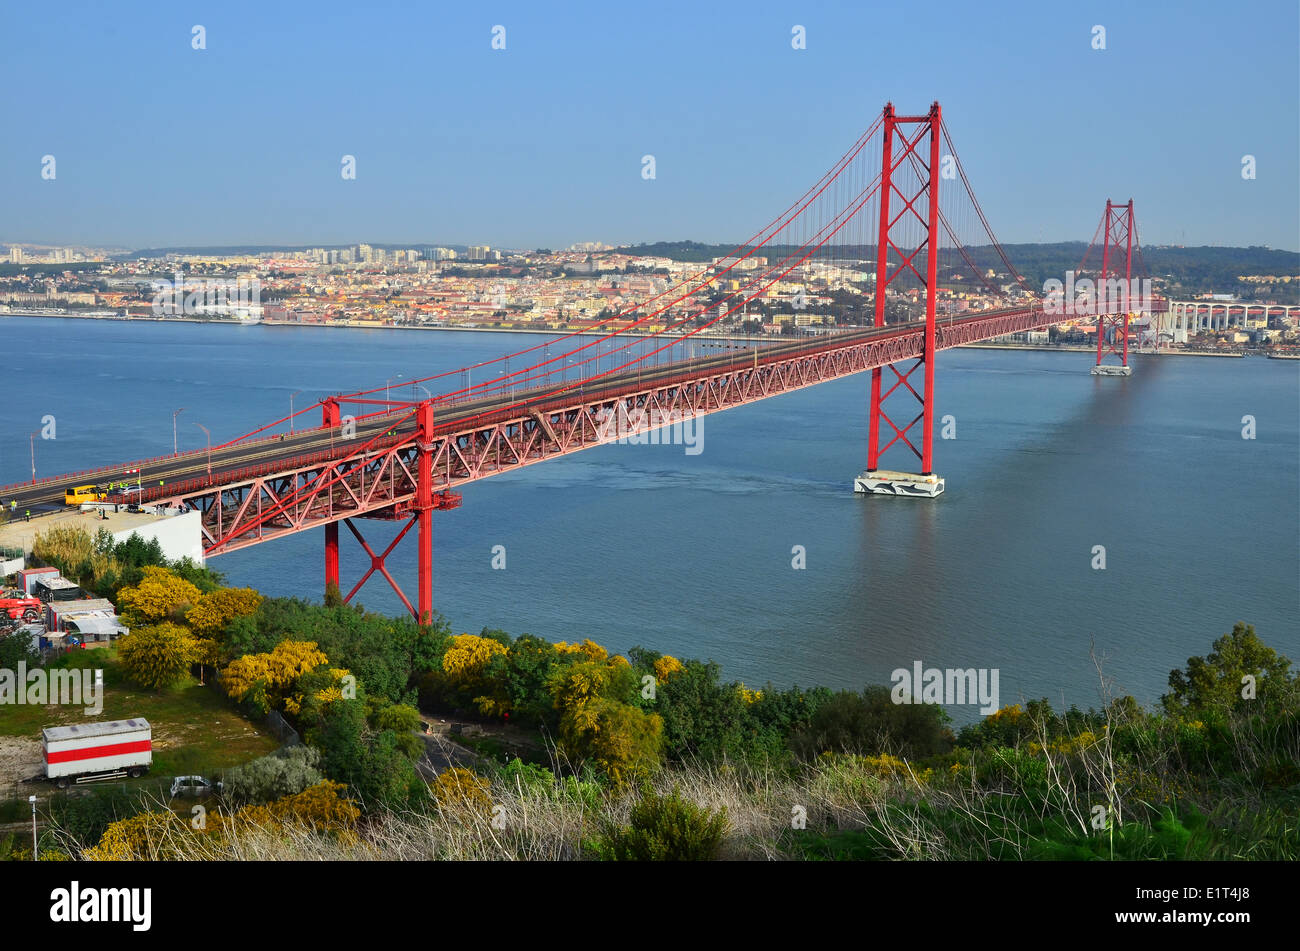 The 25 de Abril Bridge is a suspension bridge connecting the city of Lisbon to the municipality of Almada, over Stock Photo